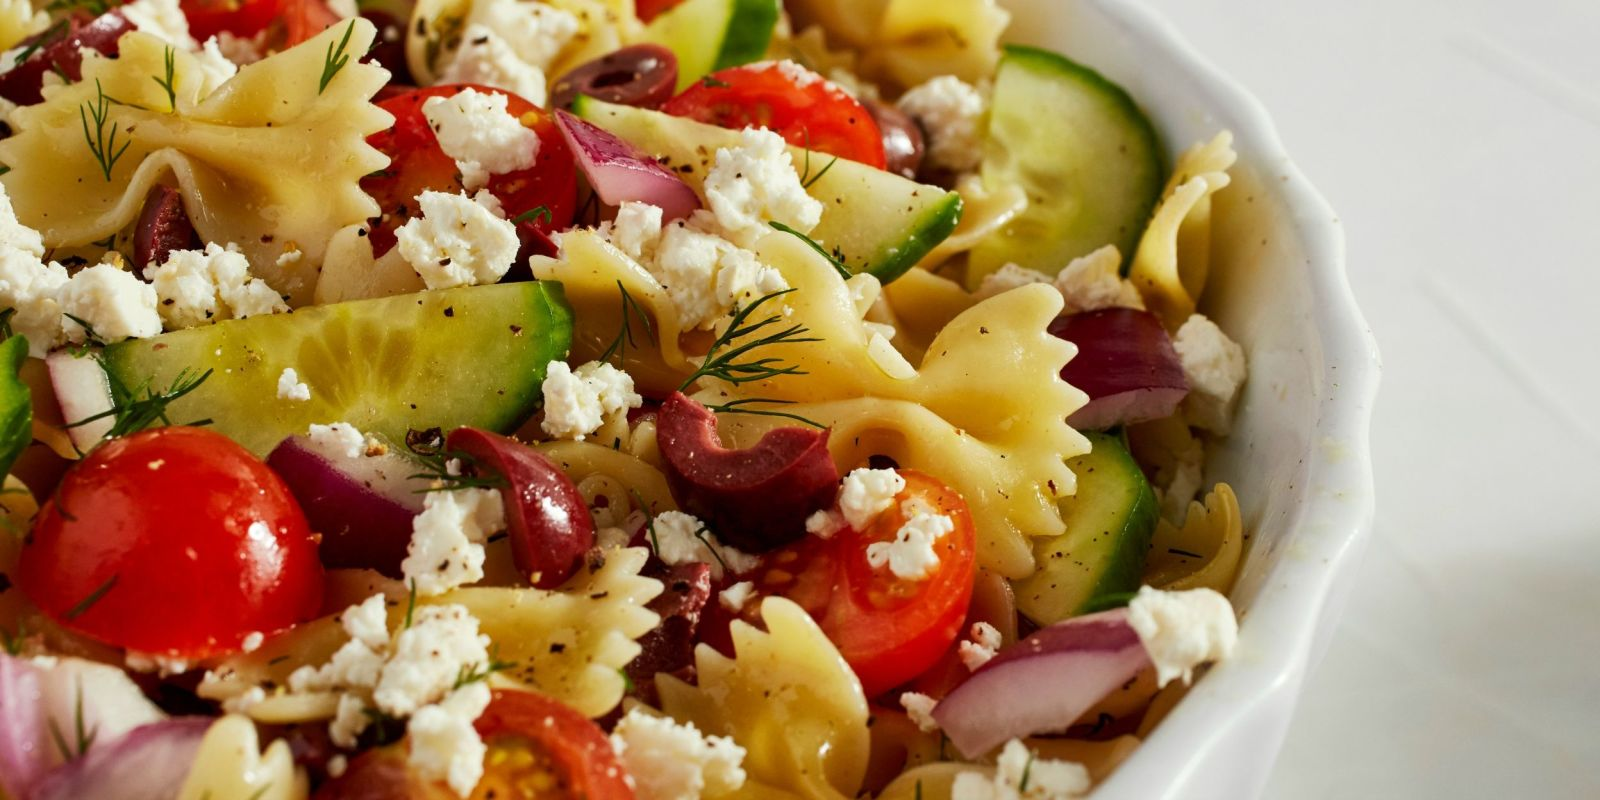 Best Greek Pasta Salad Recipe - How To Make Greek Pasta Salad